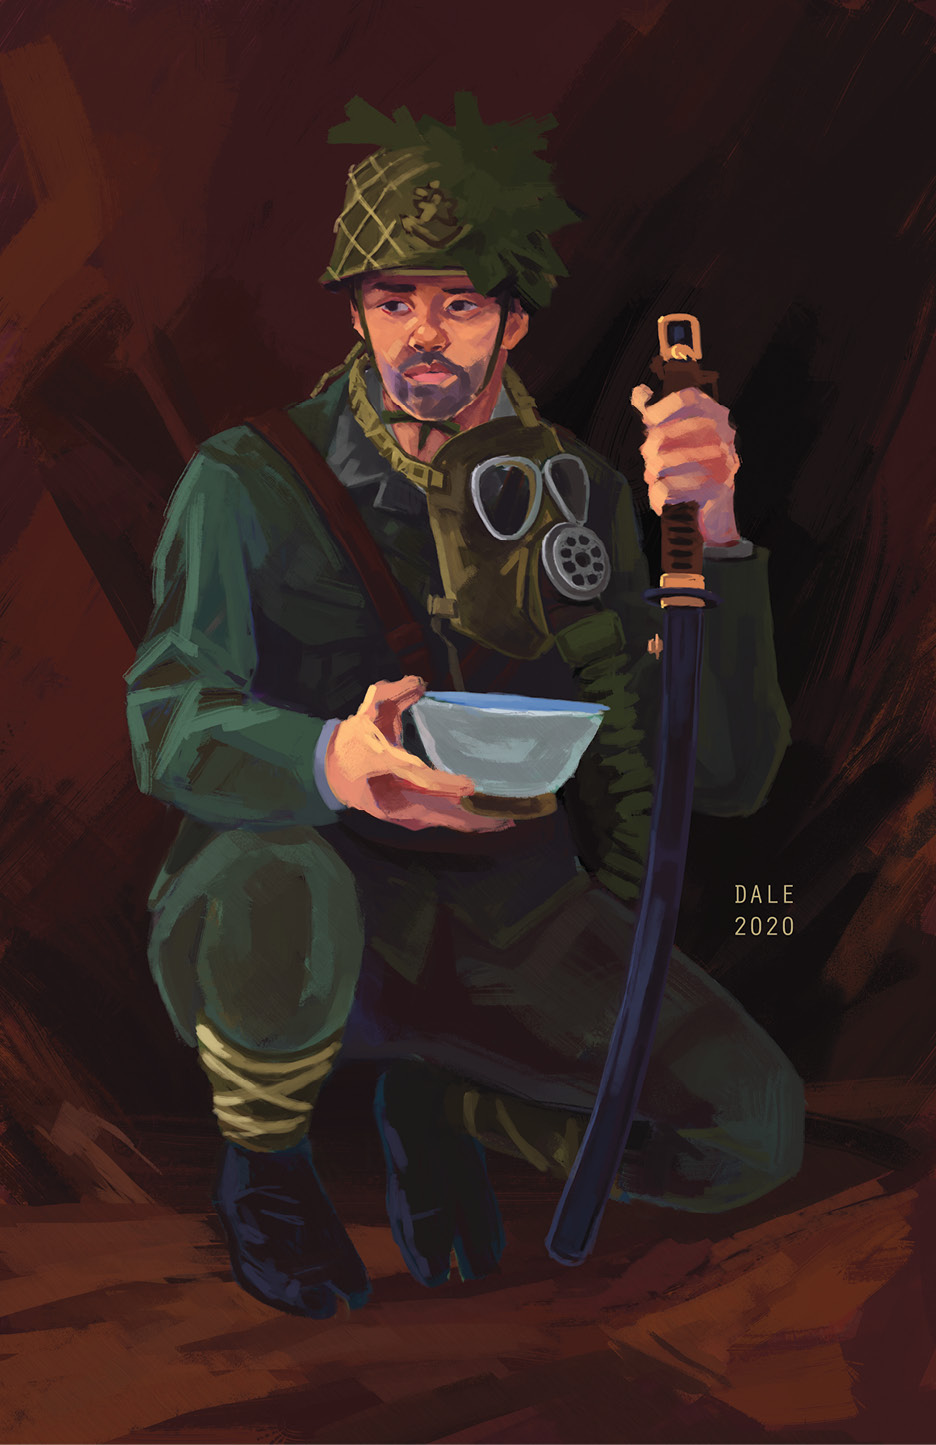 RIGHT A painting of an SNLF soldier by Cassandra Dale. He is equipped with some of the artefacts found at Teme, including a Type 93 No. 3 gasmask, Type II/III Navy helmet, and